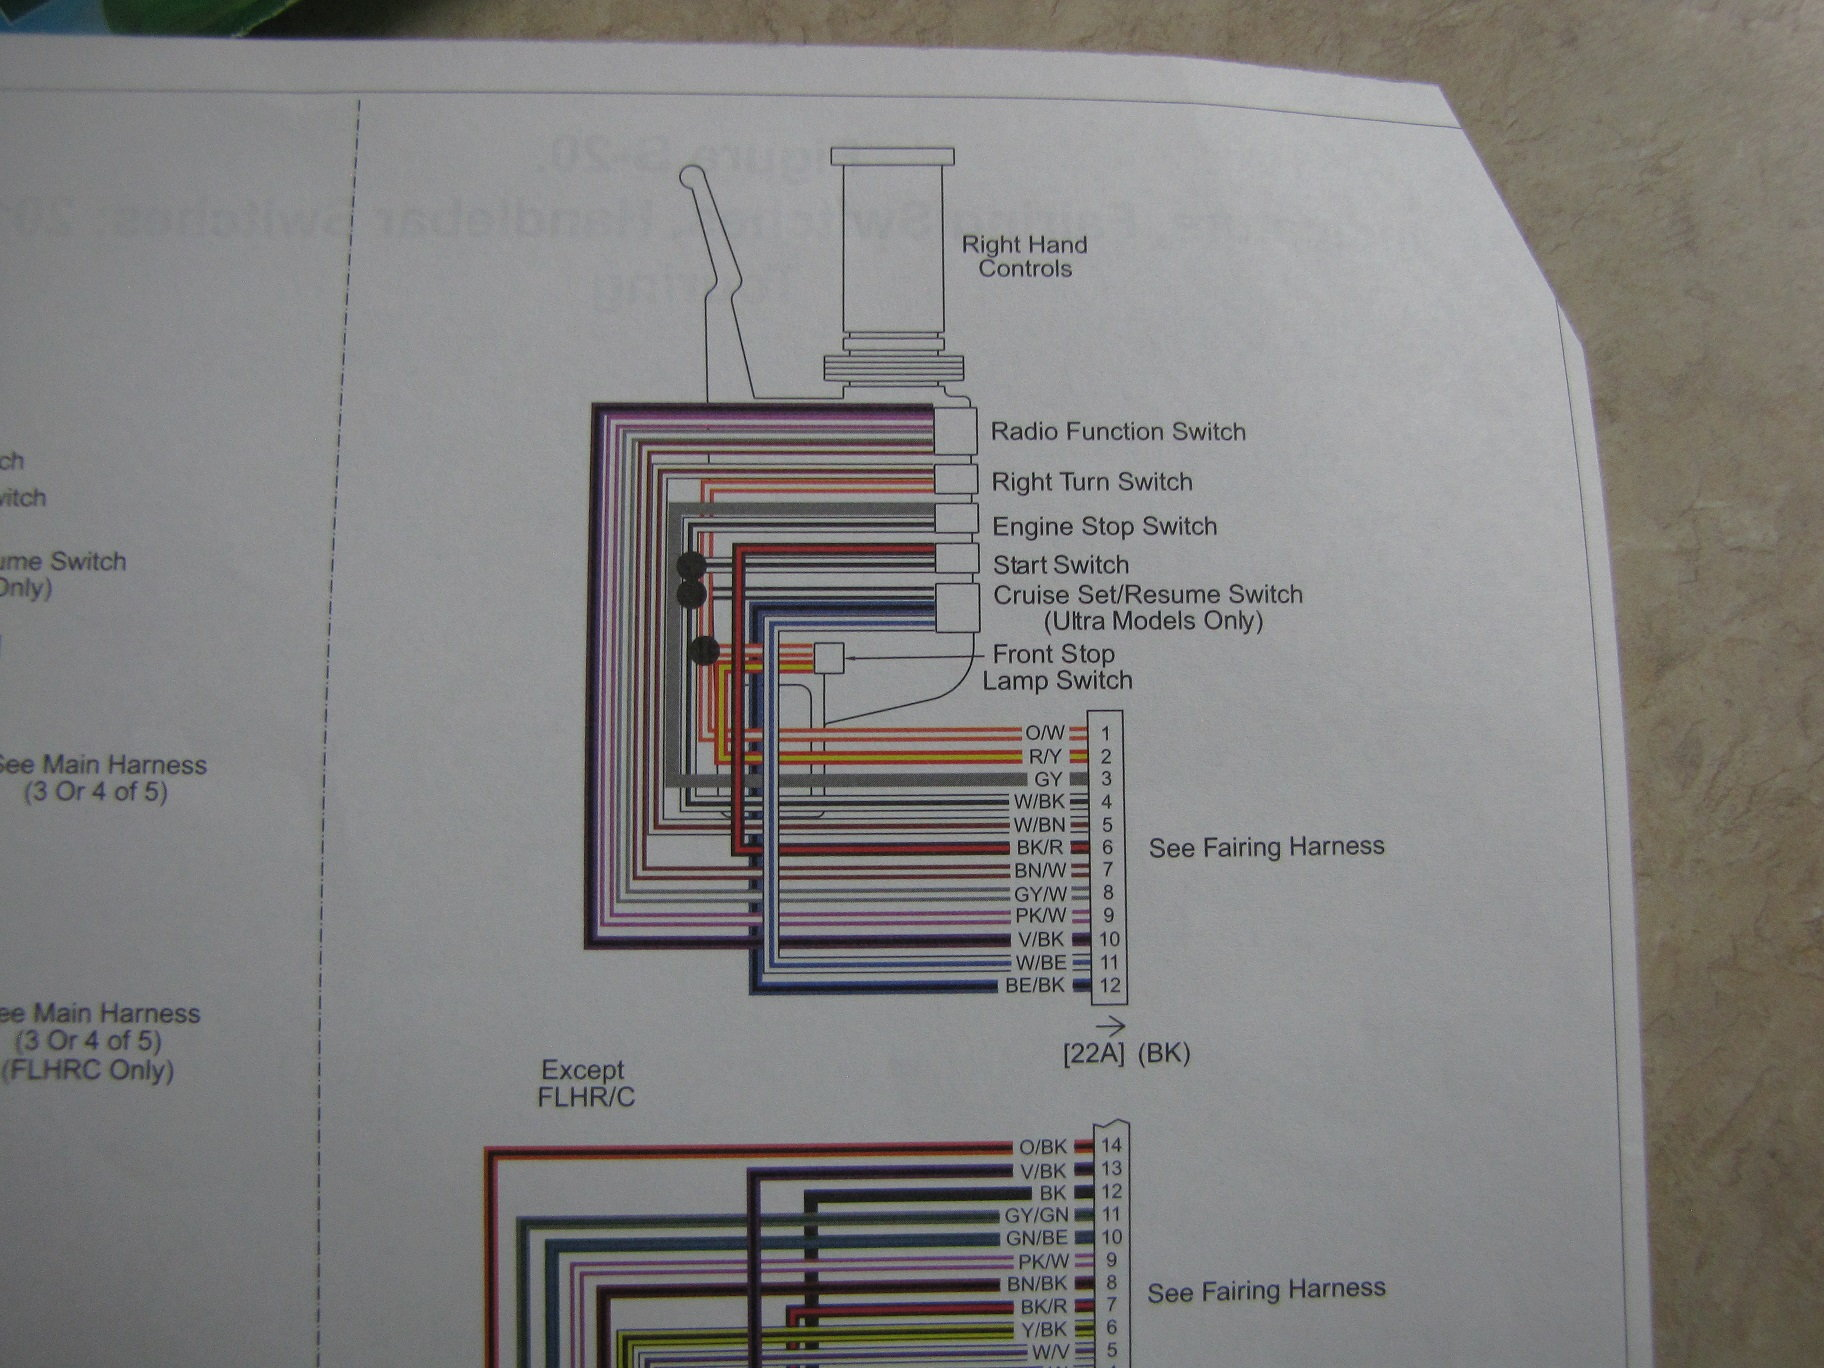 2011 Harley Flhx Wiring Diagram - Wiring Diagrams on